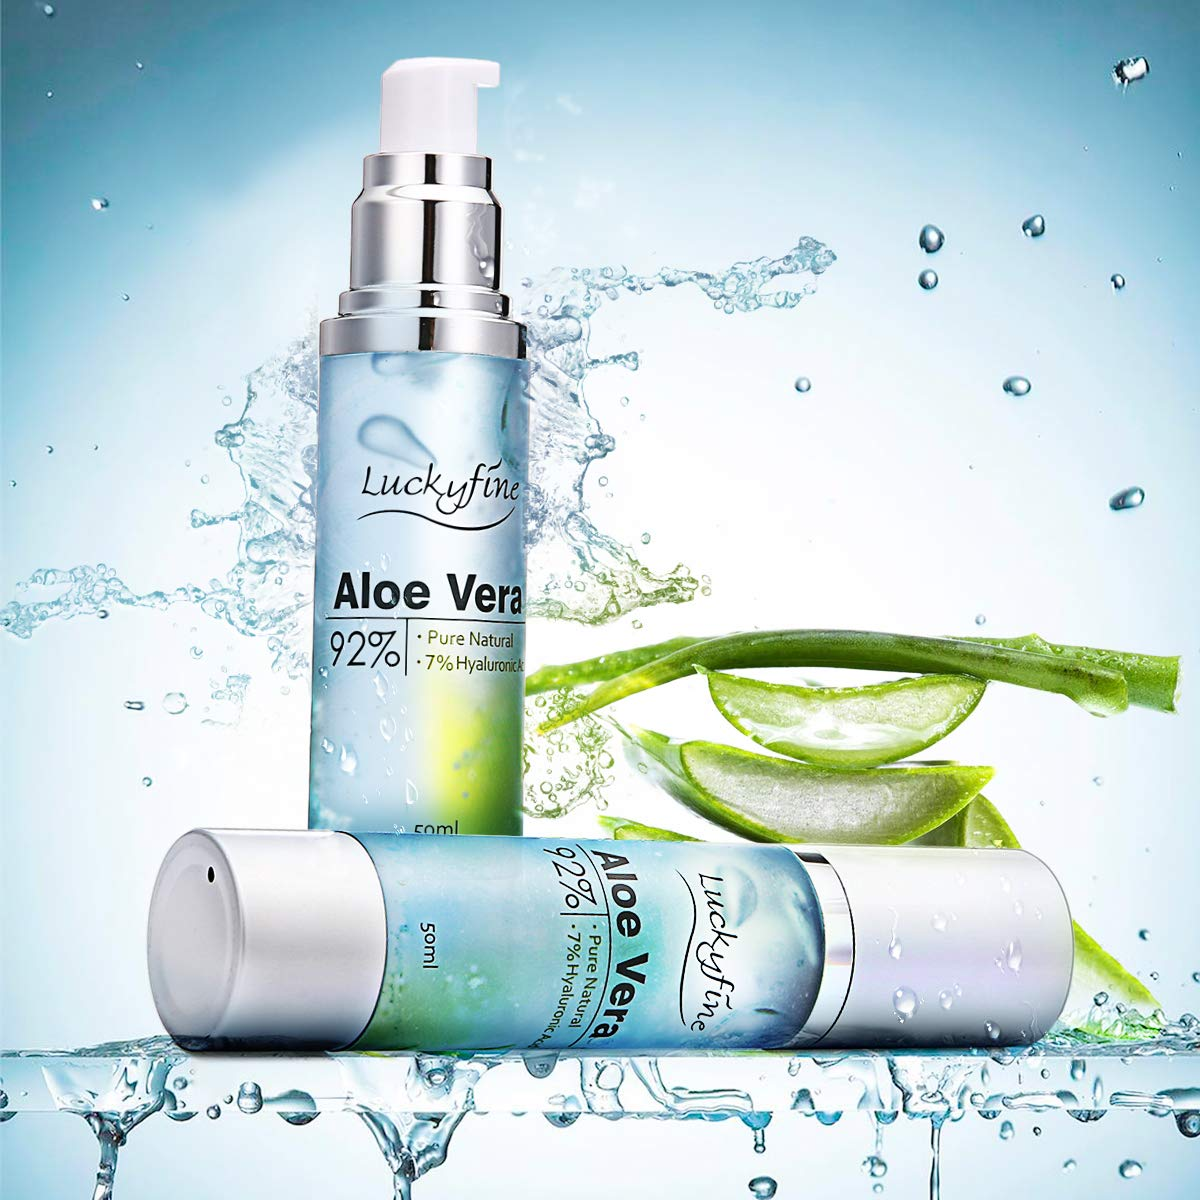 Luckyfine Aloe Vera Essence for Face, Natural 92% Aloe Vera & 7% Hyaluronic Acid, Soothing & Moisture for Acne, Sunburn, Itchy, Dry Skin, Facial Moisturizing, Face Whitening by Luckyfine